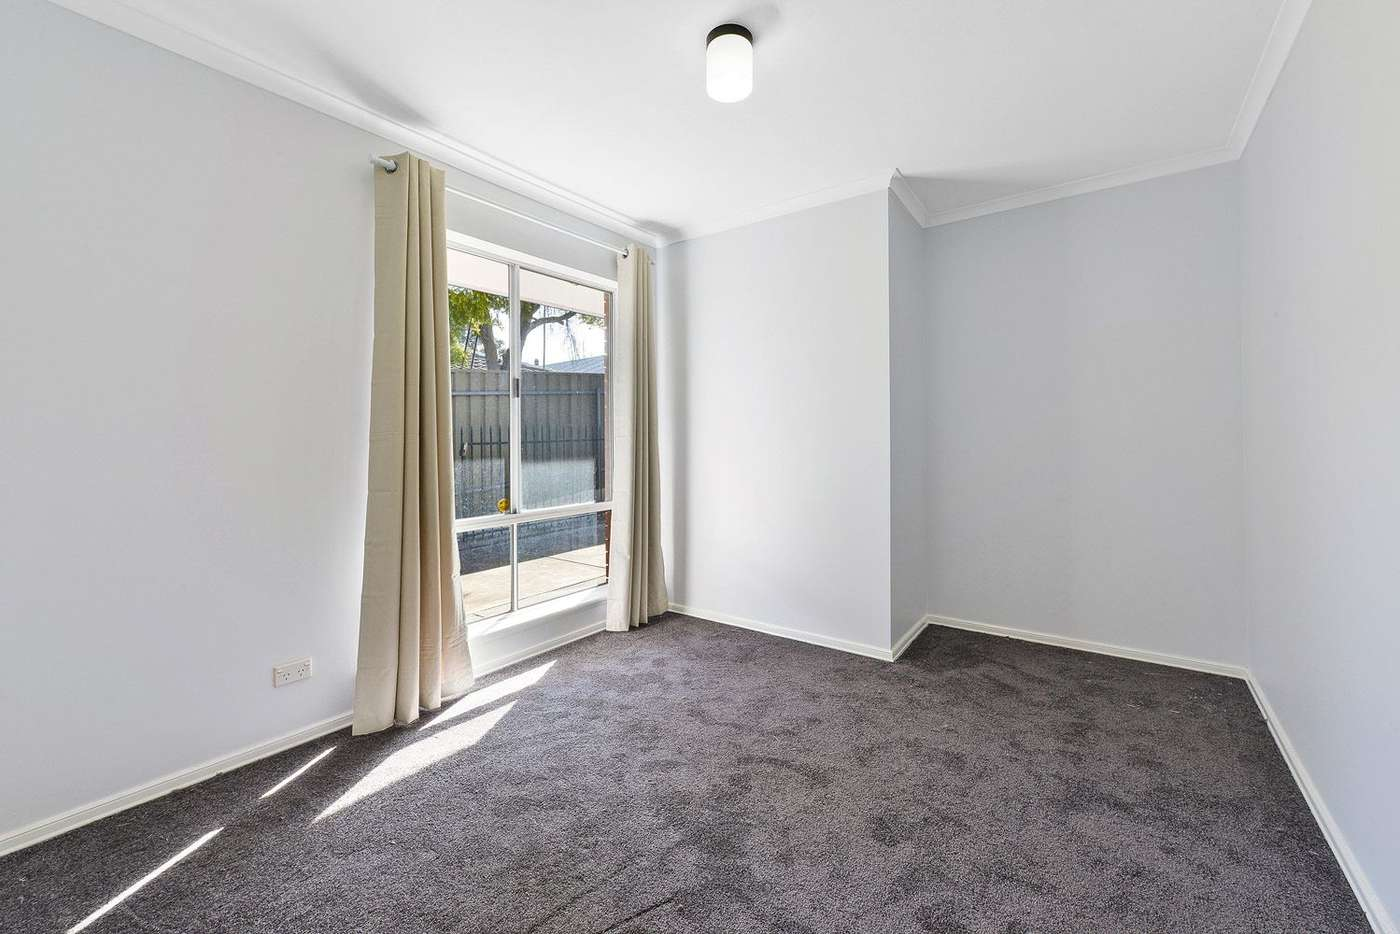 Sixth view of Homely house listing, 17 Musgrave Avenue, Aberfoyle Park SA 5159